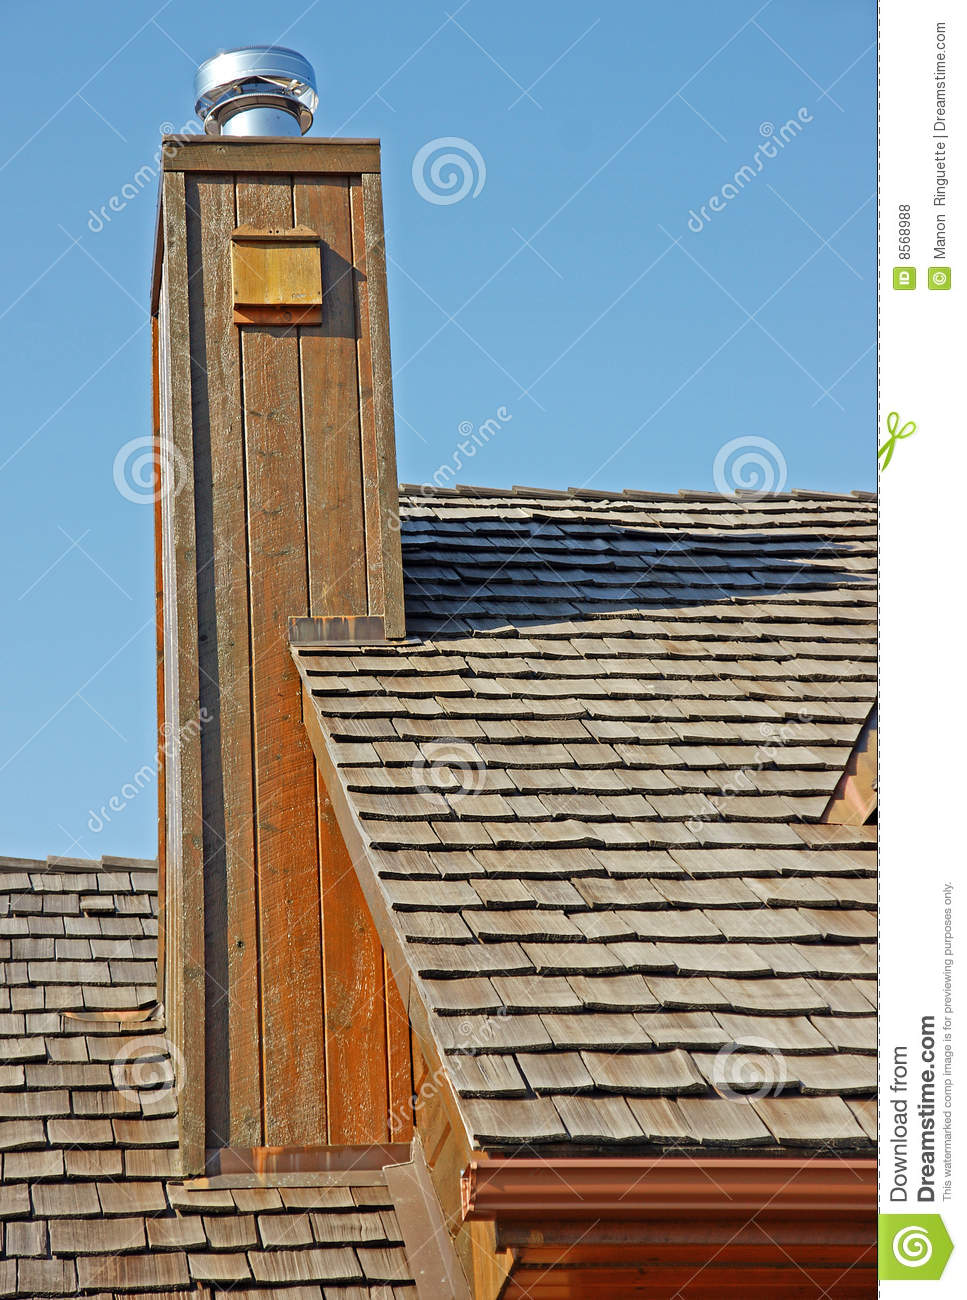 Chimney Royalty Free Stock Photos Image 8568988